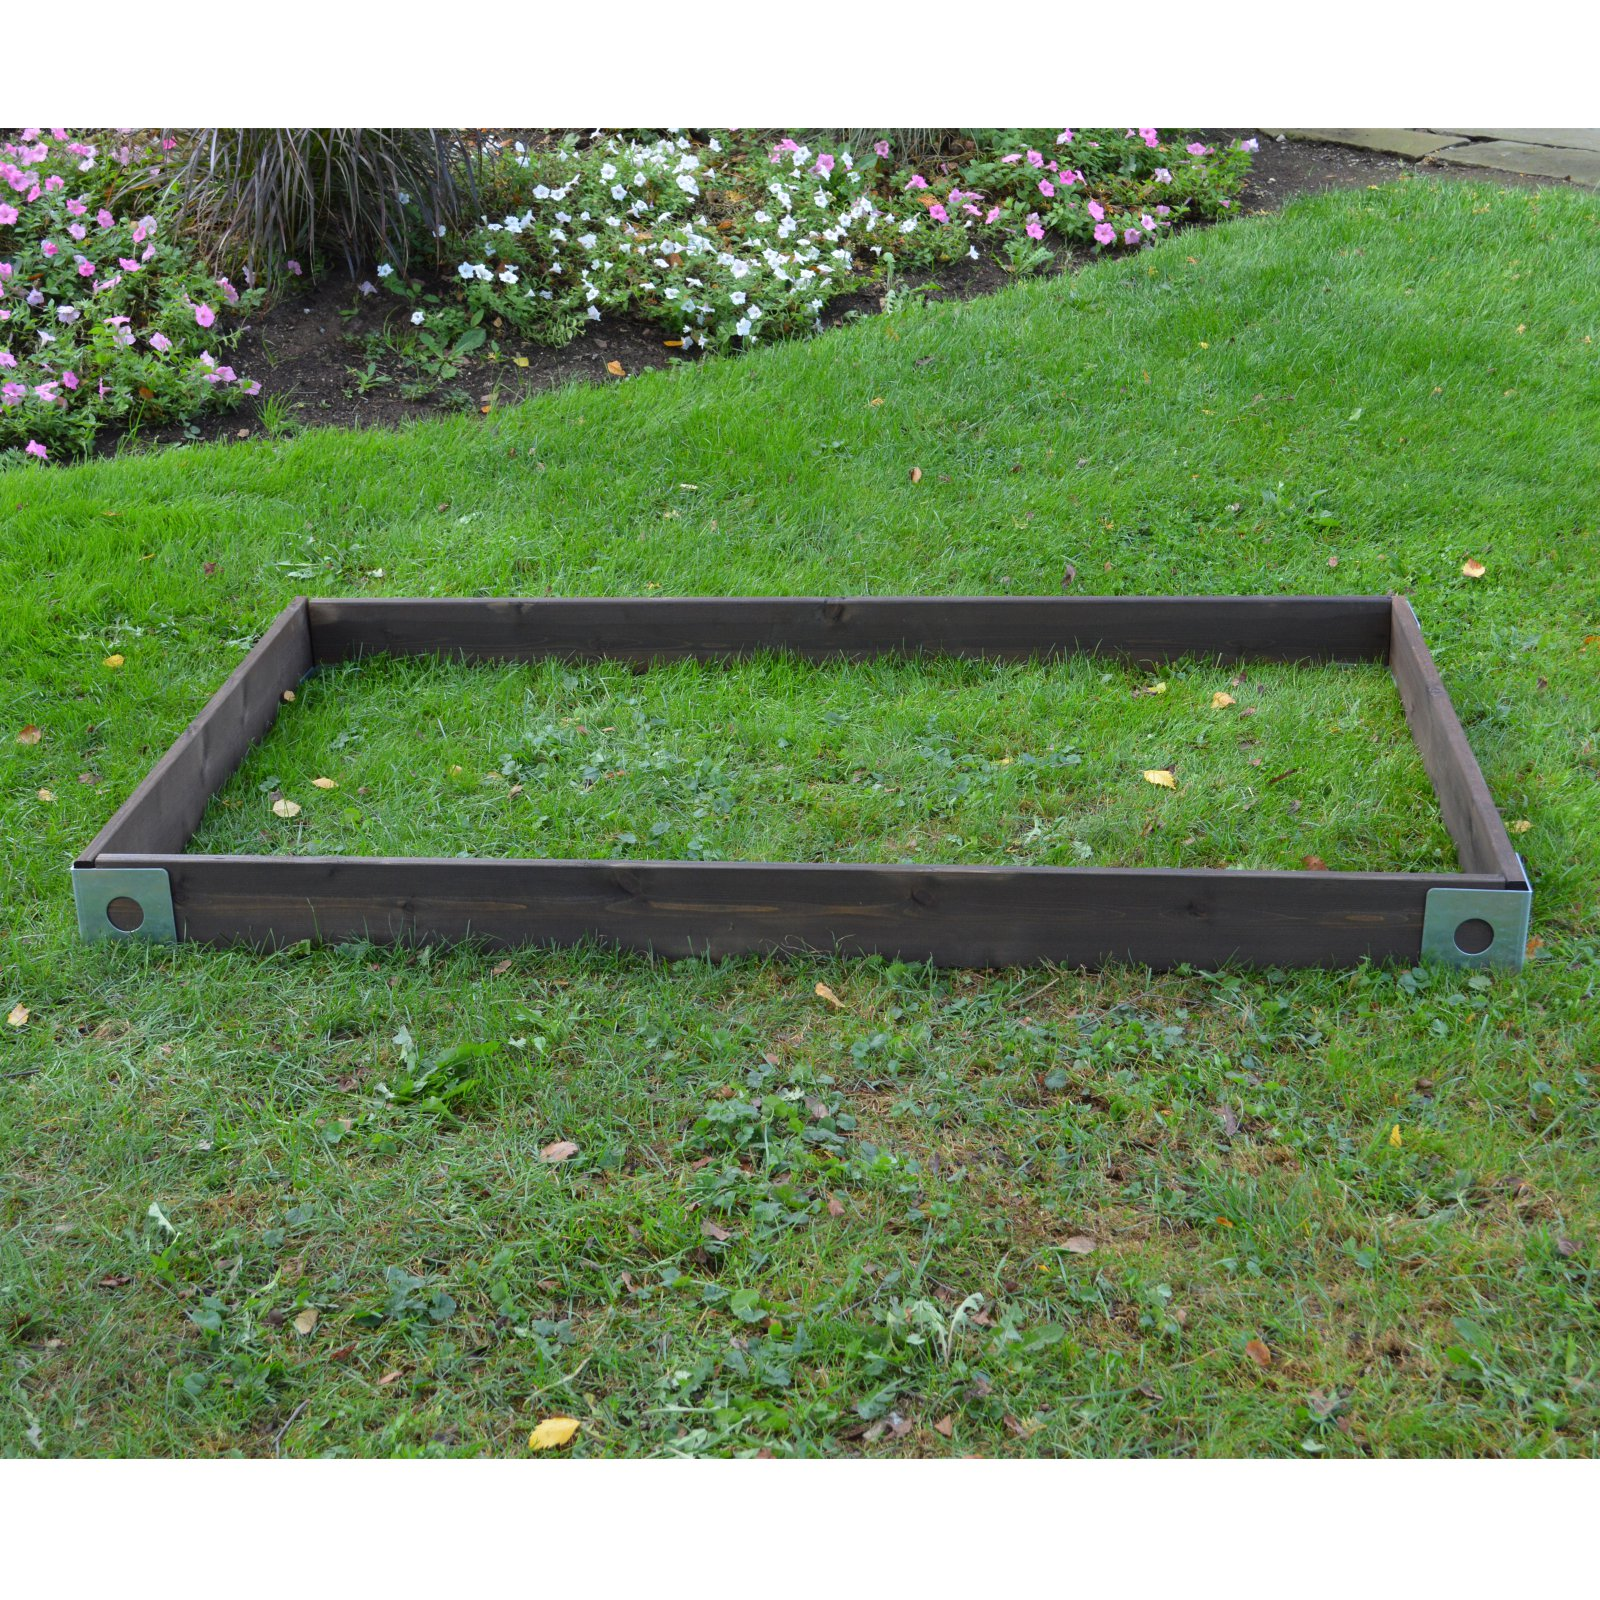 A & L Furniture Cedar Raised Garden Bed With Steel Corners